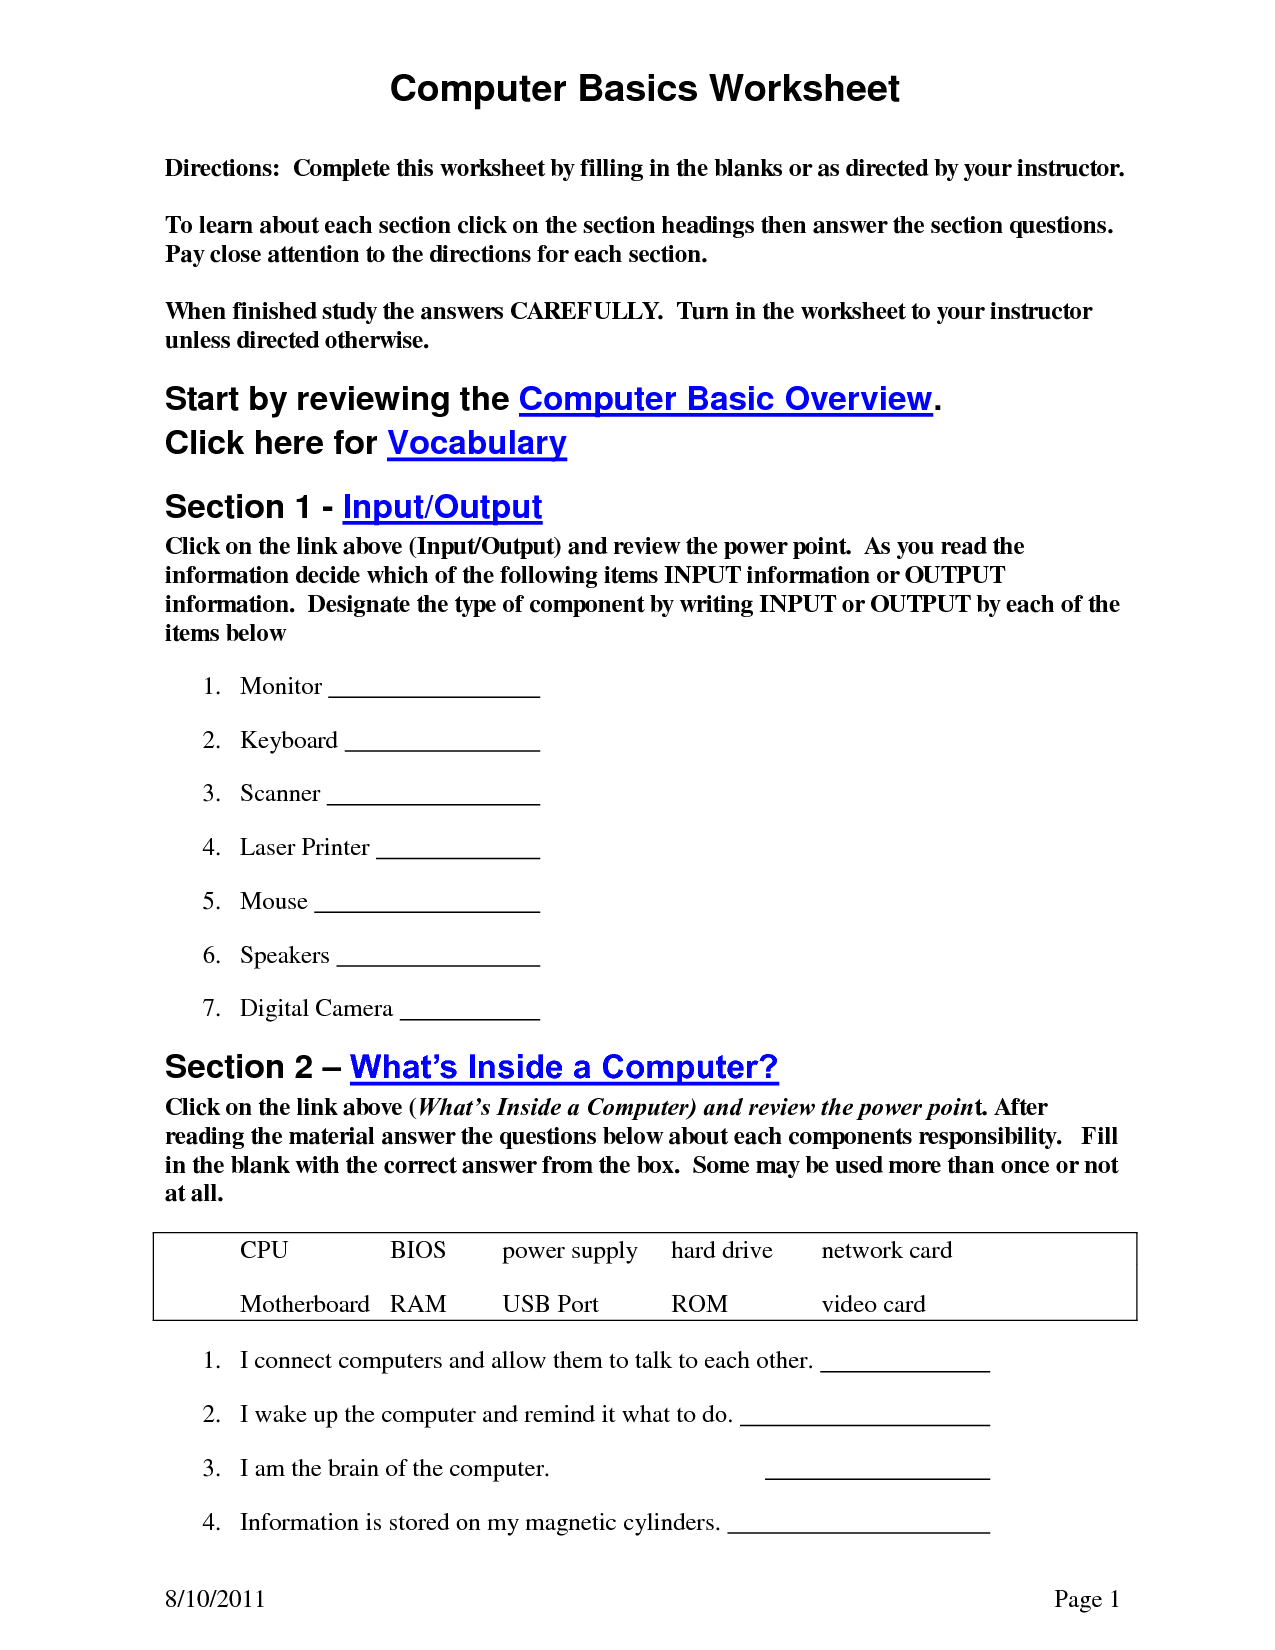 17 Best Images Of Basic Computer Skills Worksheets